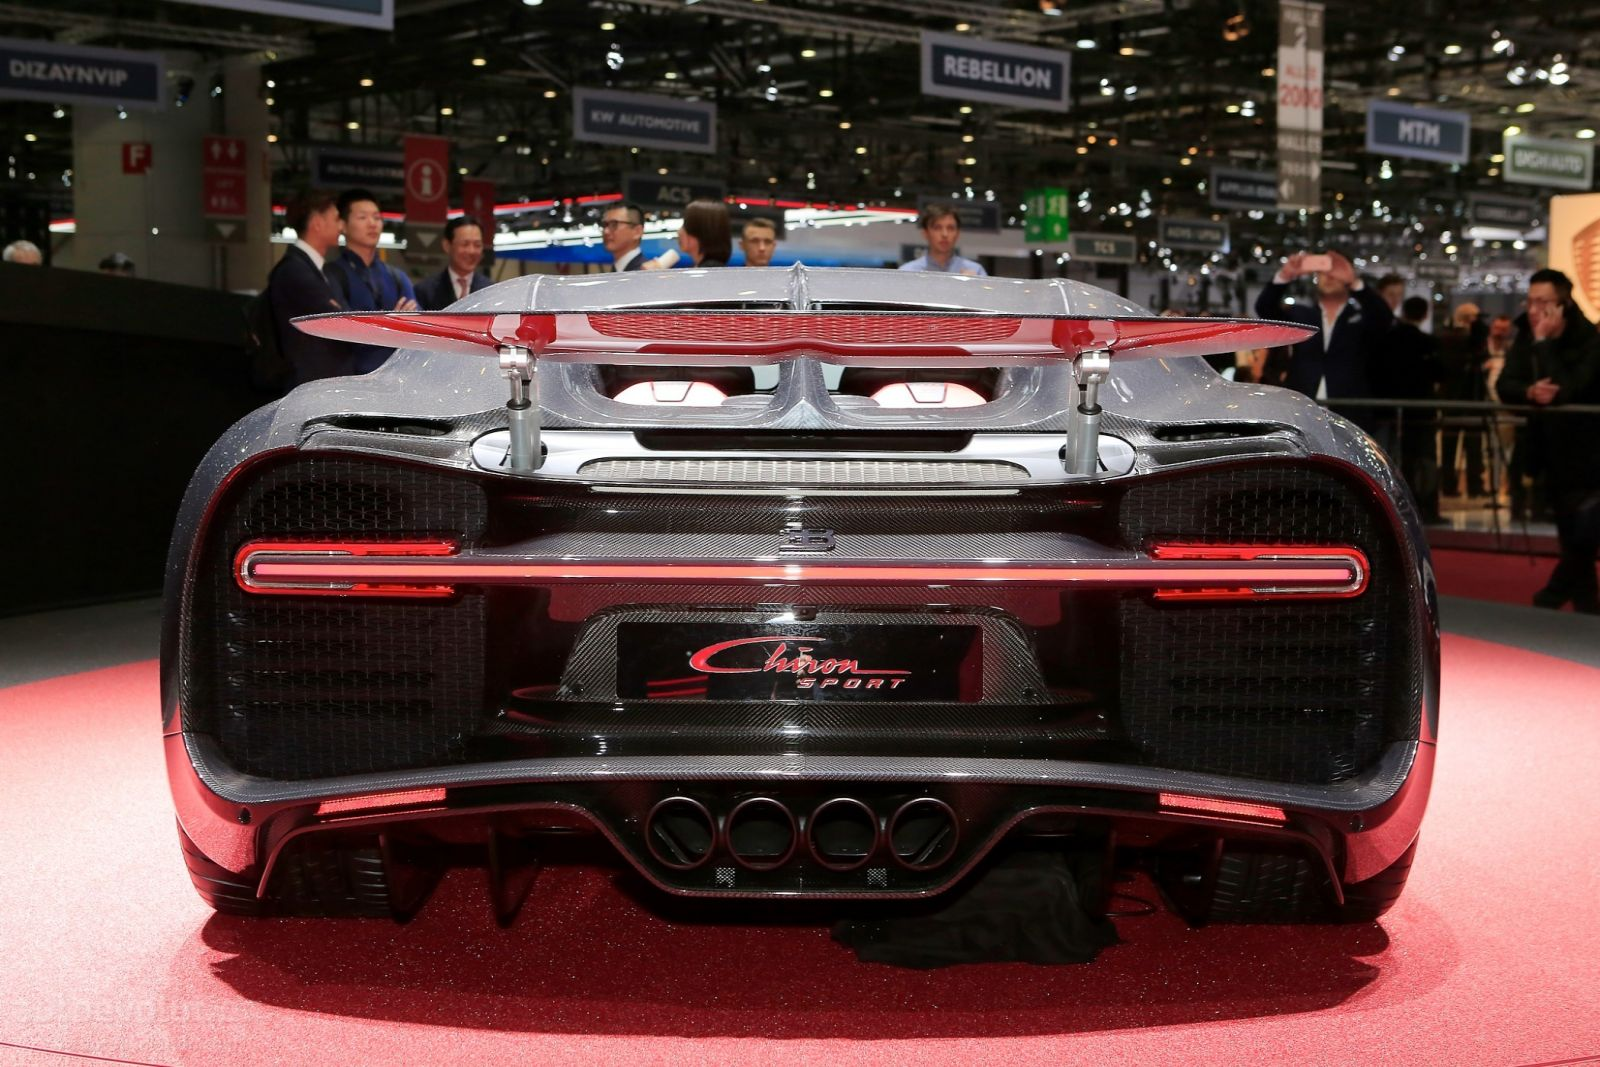 sport bugatti chiron with Bugatti Divo Hipercarro Sera Lancado Em Breve on voiture Sportive together with 2017 Bugatti Chiron First Drive Review Pictures also 2019 Bugatti Divo Pebble Beach Monterey Hypercar as well A 4244 essai Peugeot 204 Cabriolet 28 in addition Lykan Hypersport.